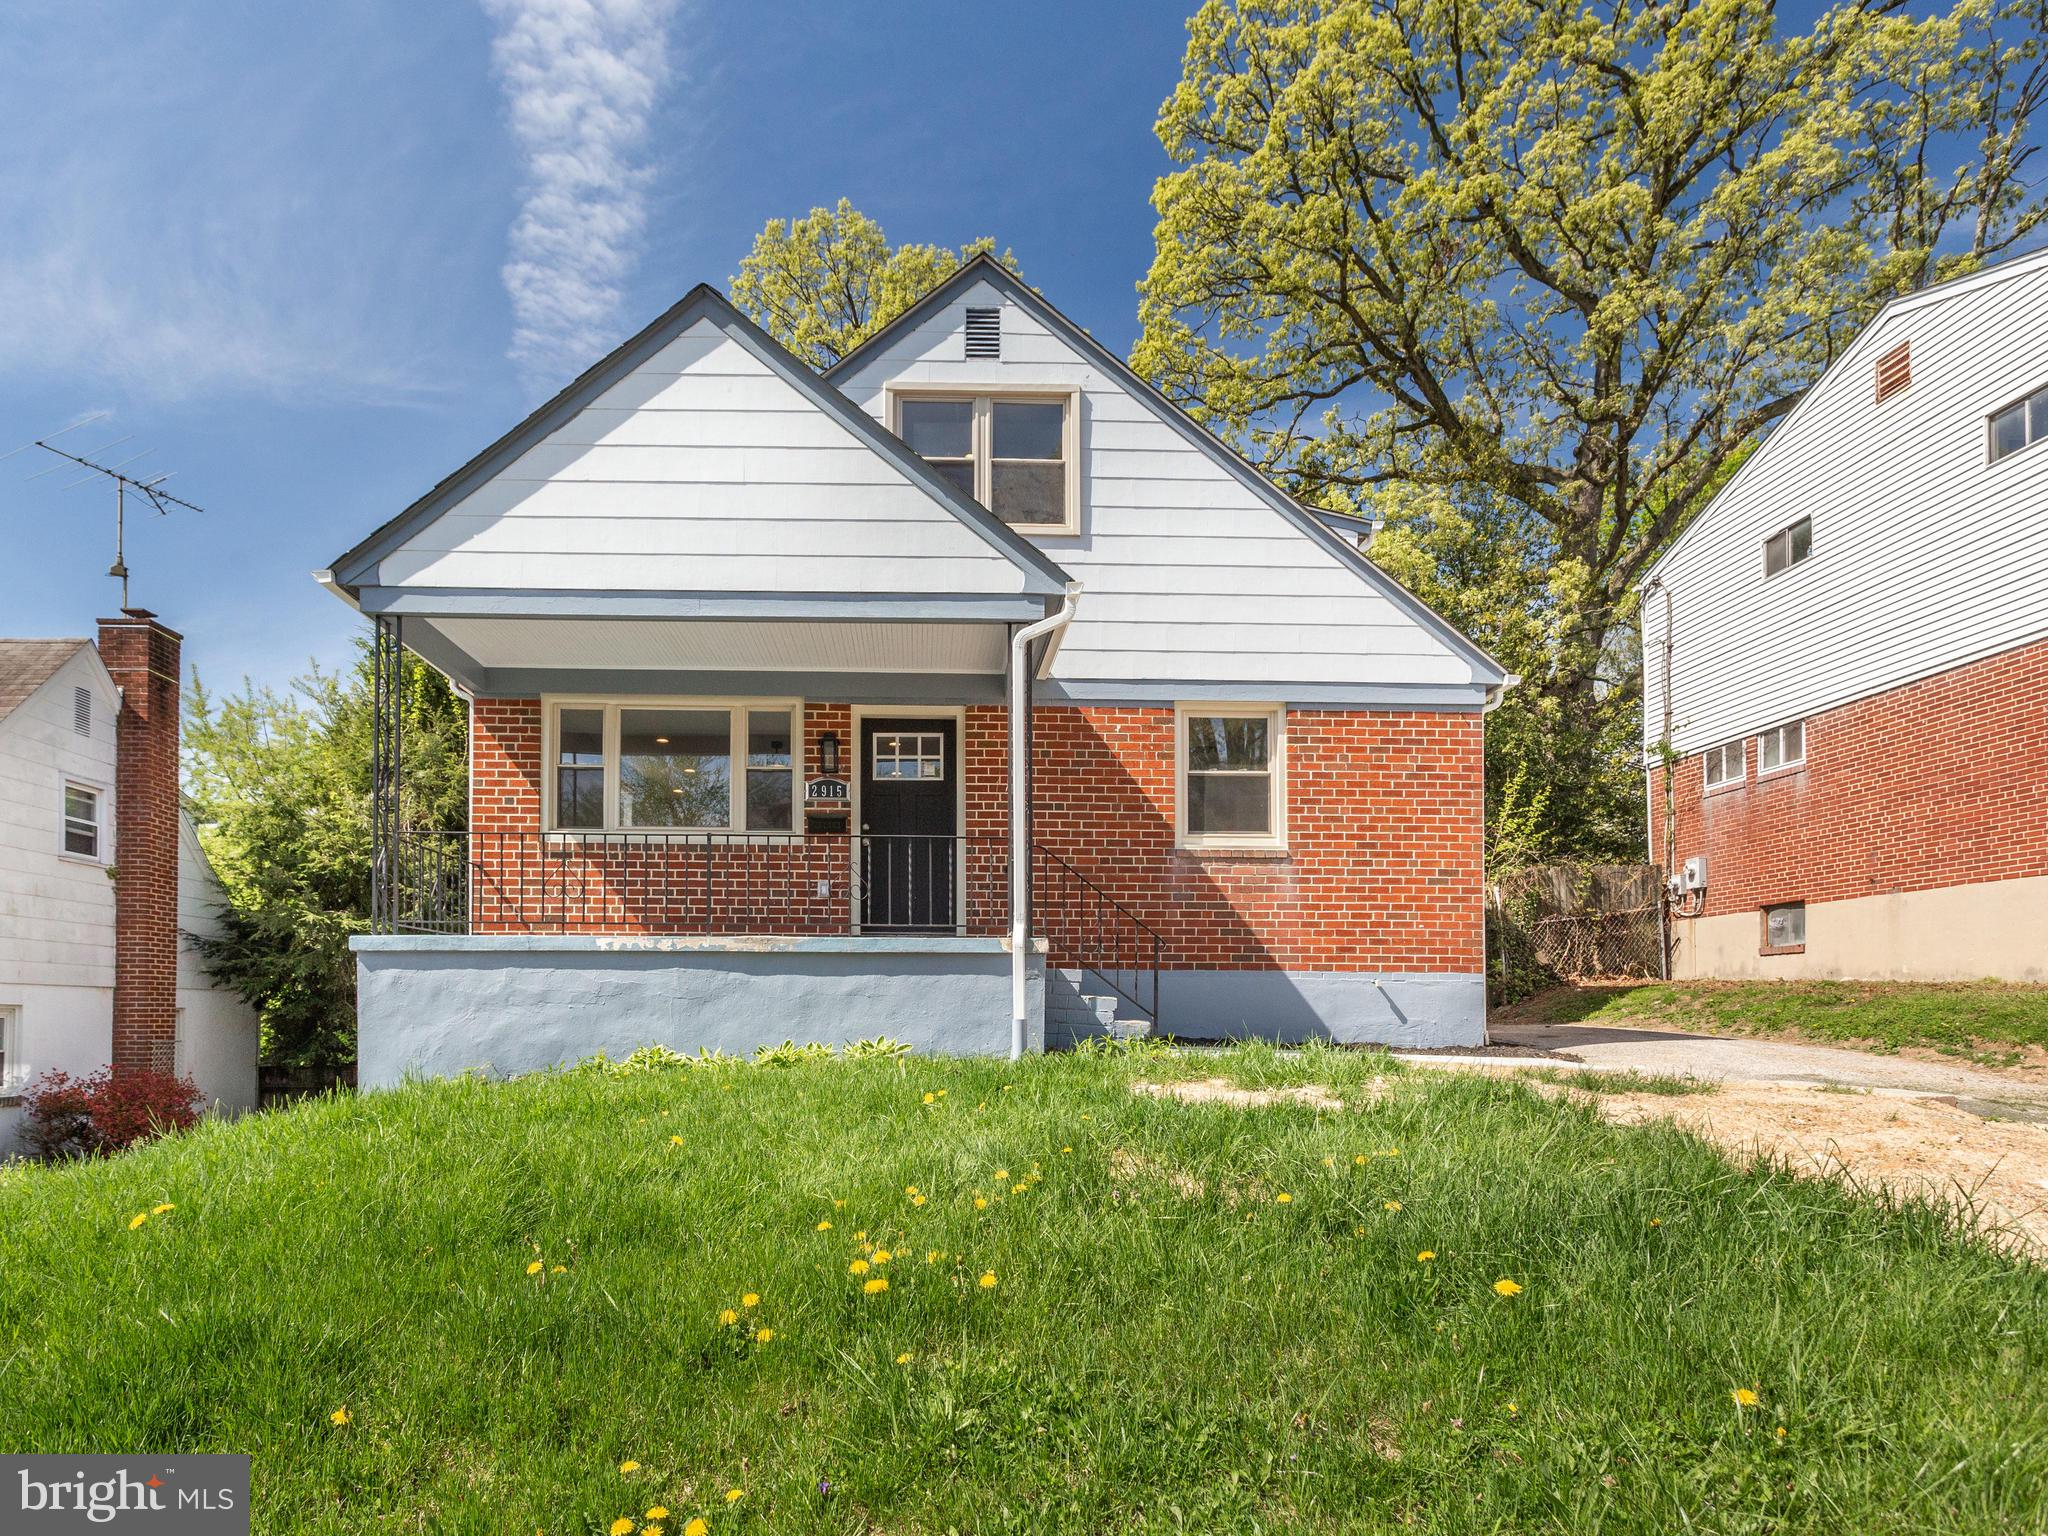 2915 BAYONNE AVENUE, BALTIMORE, MD 21214